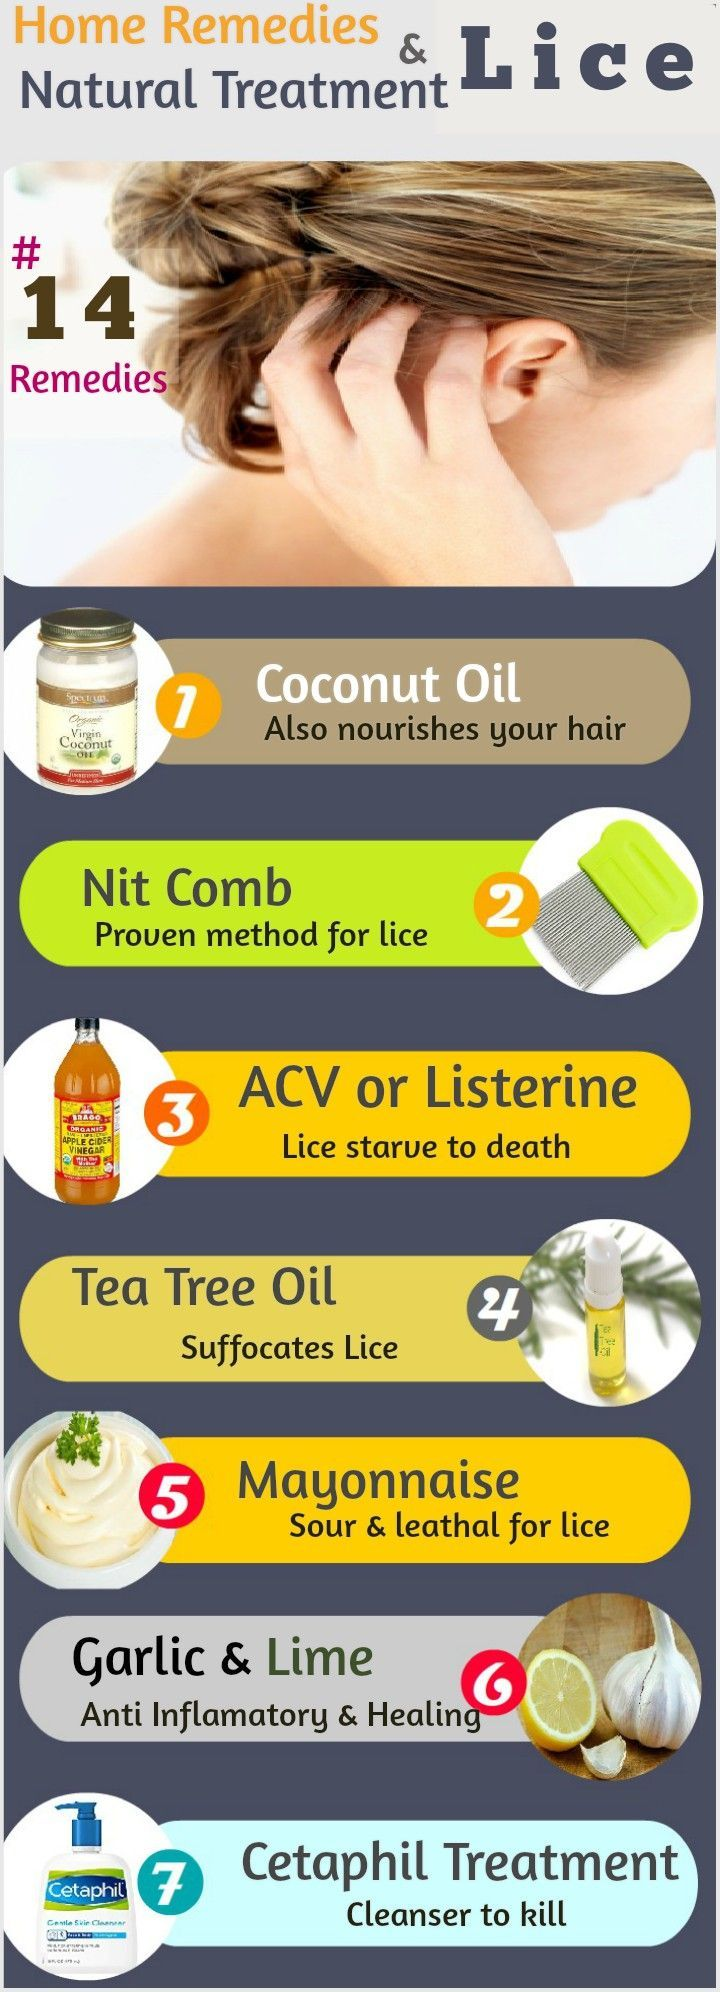 Lice Home Remedies and Natural Treatment  1 Salt Water 2 Coconut Oil 3. 25  unique Nit treatment ideas on Pinterest   Hair nits  Natural